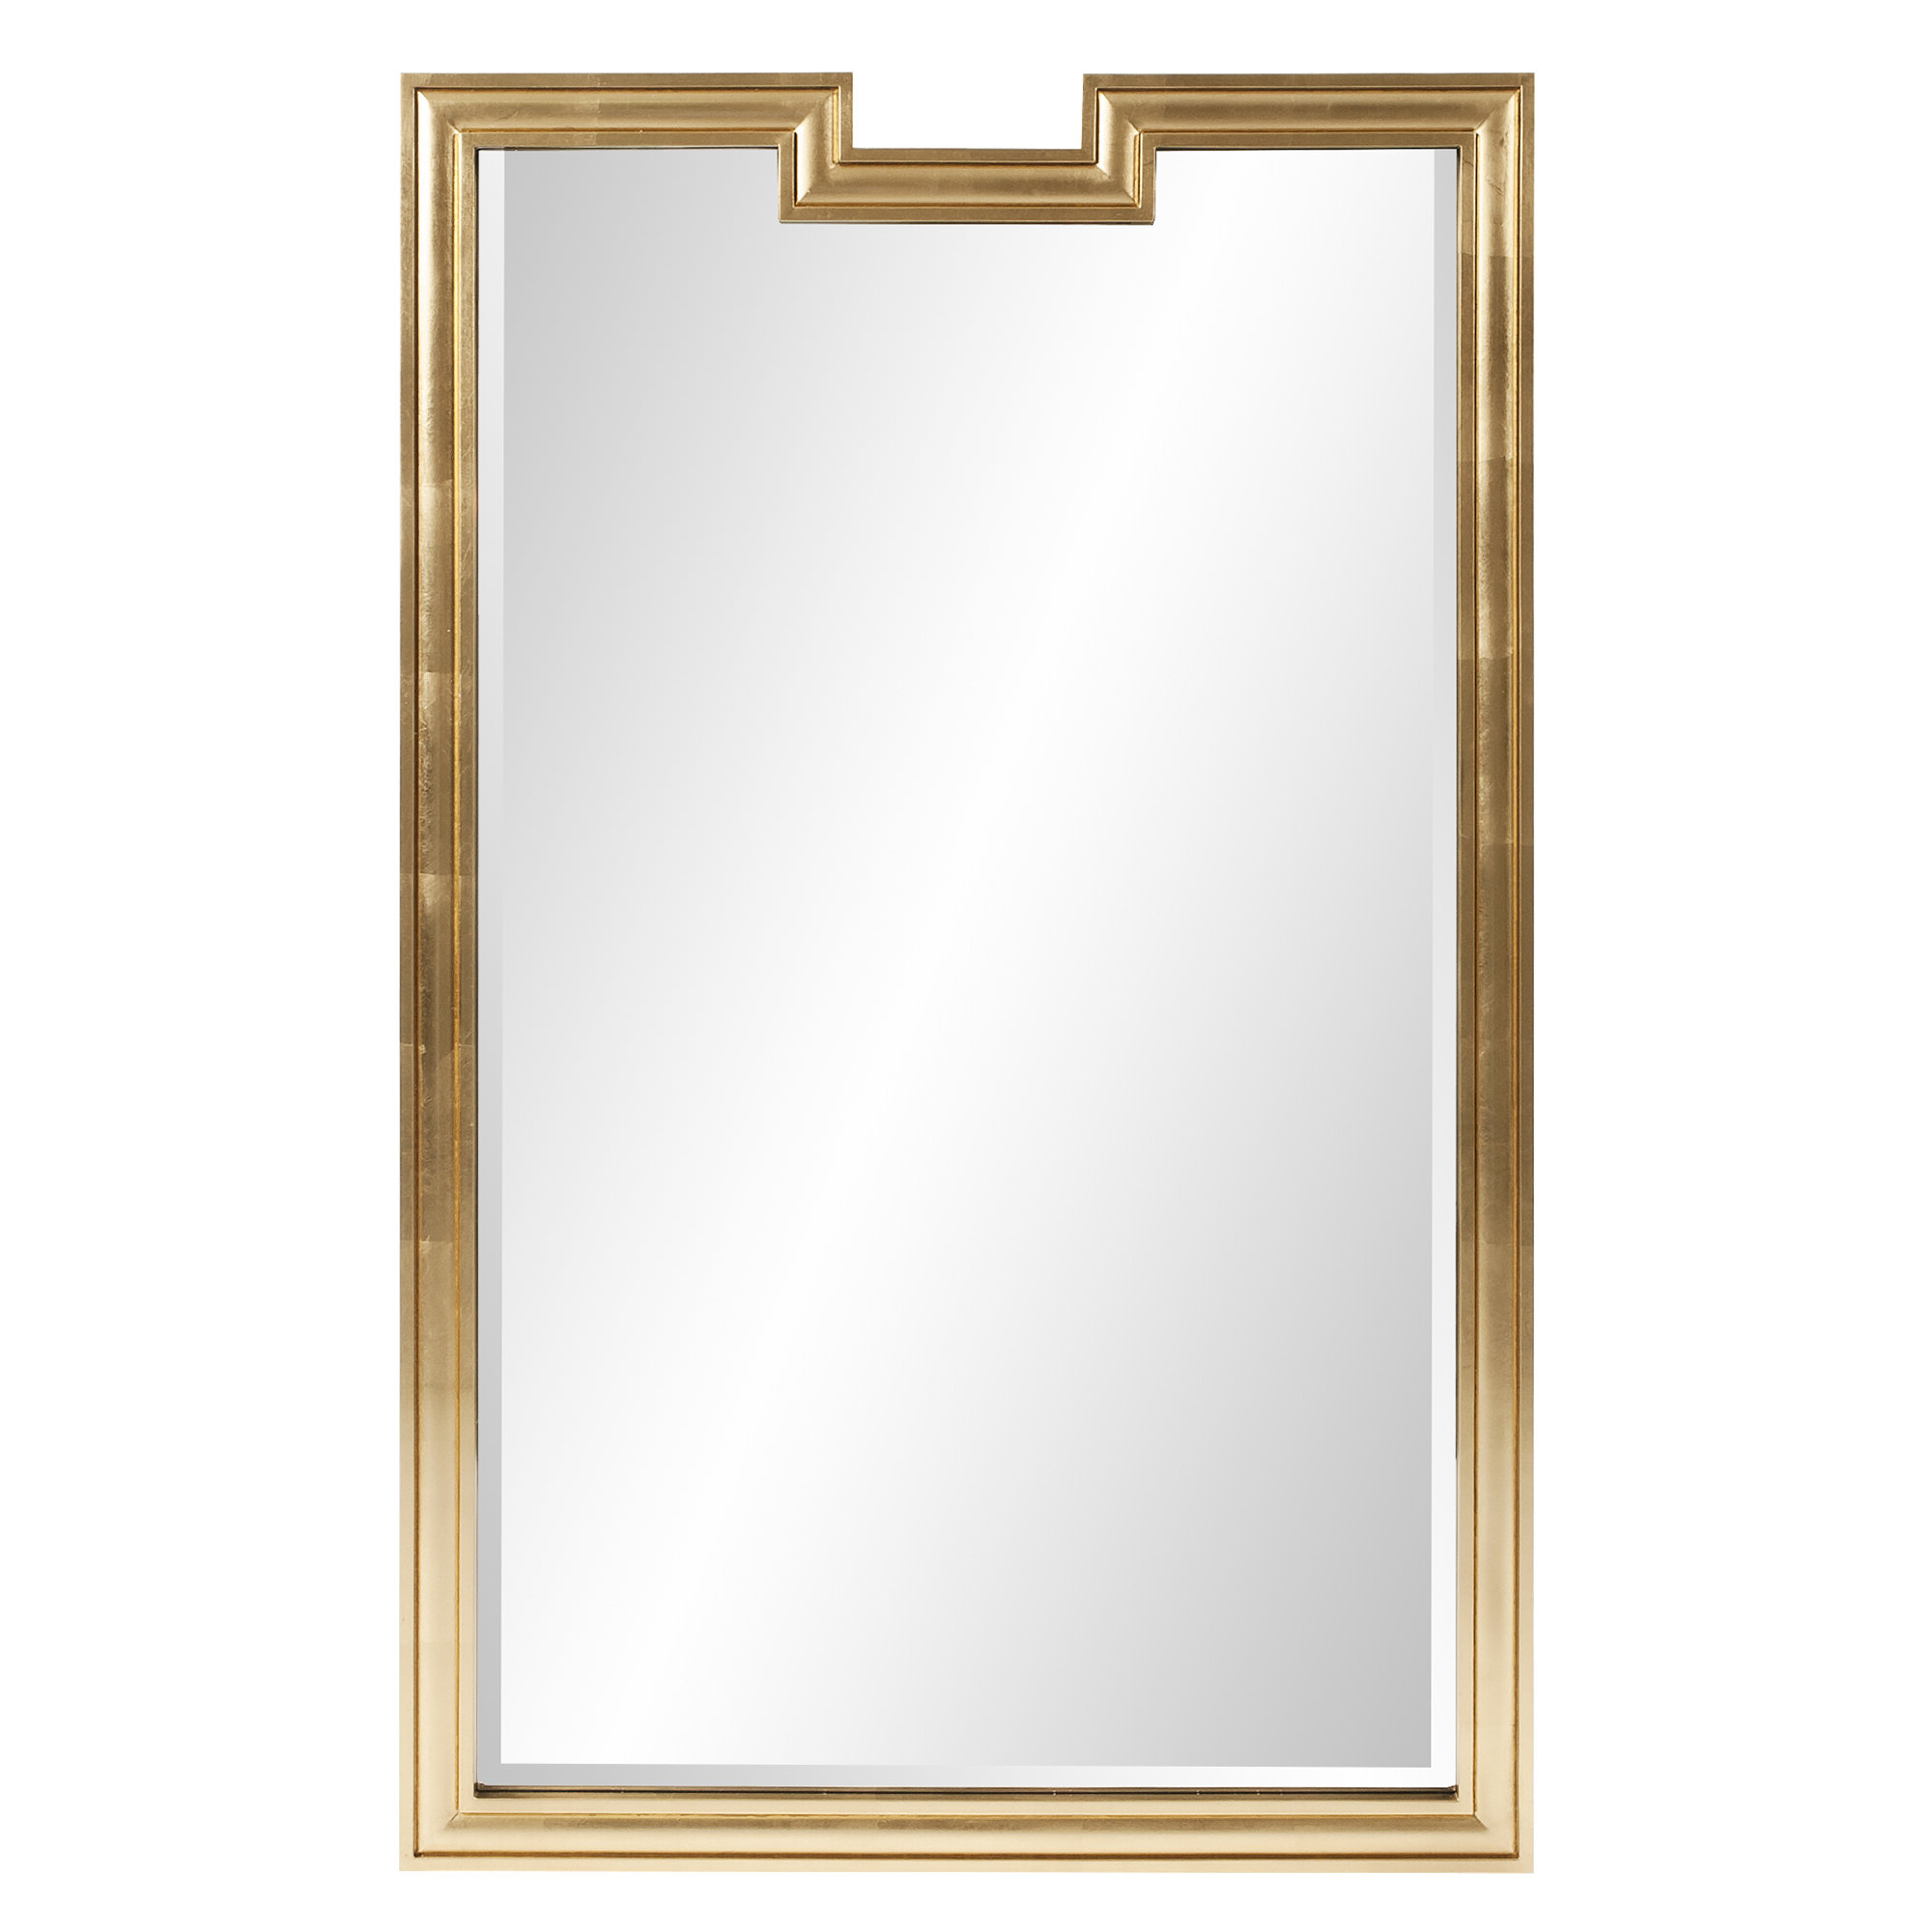 2020 Astrid Modern & Contemporary Accent Mirrors Inside Danube Accent Mirror (View 7 of 20)